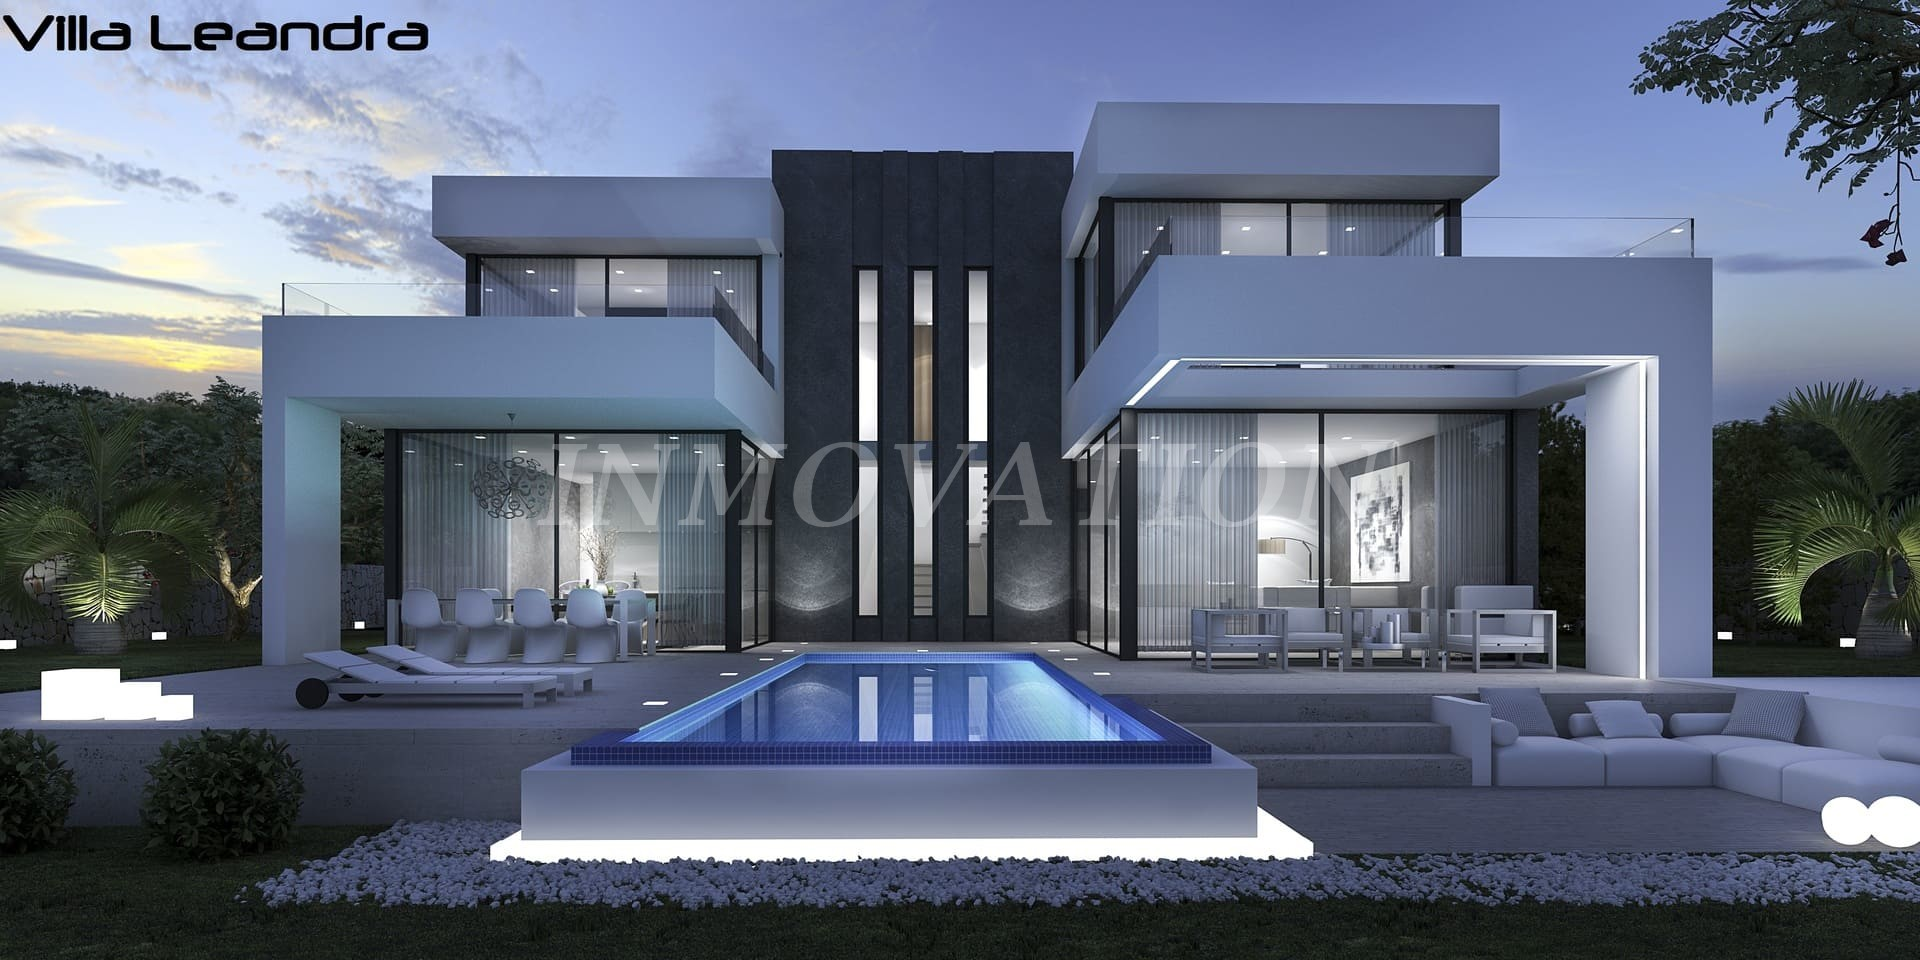 A Superb New Villa for Javea